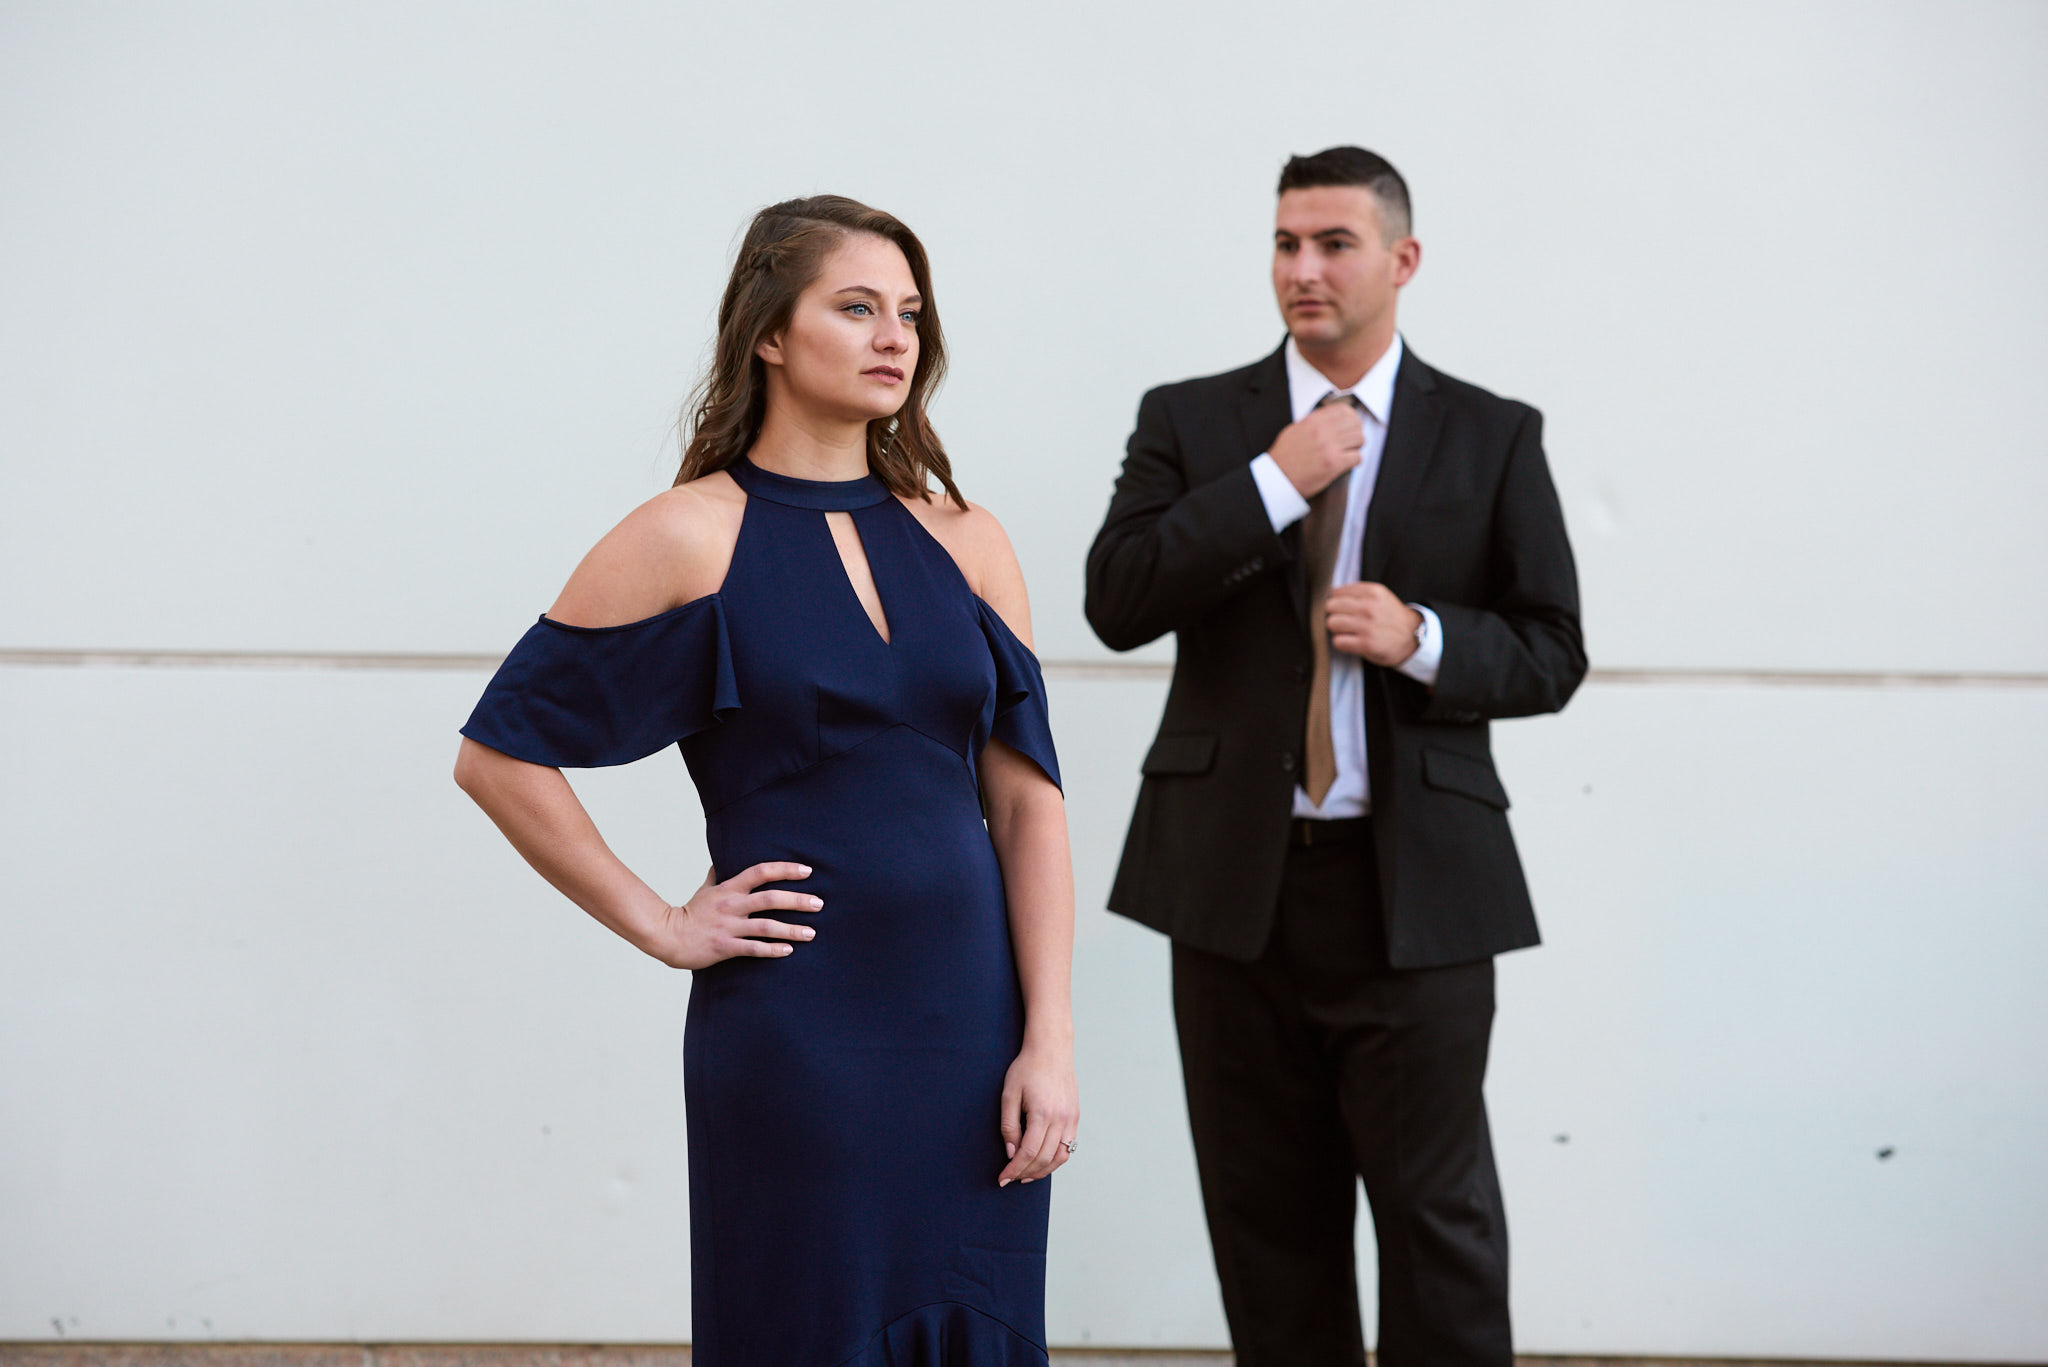 Formal engagement portrait